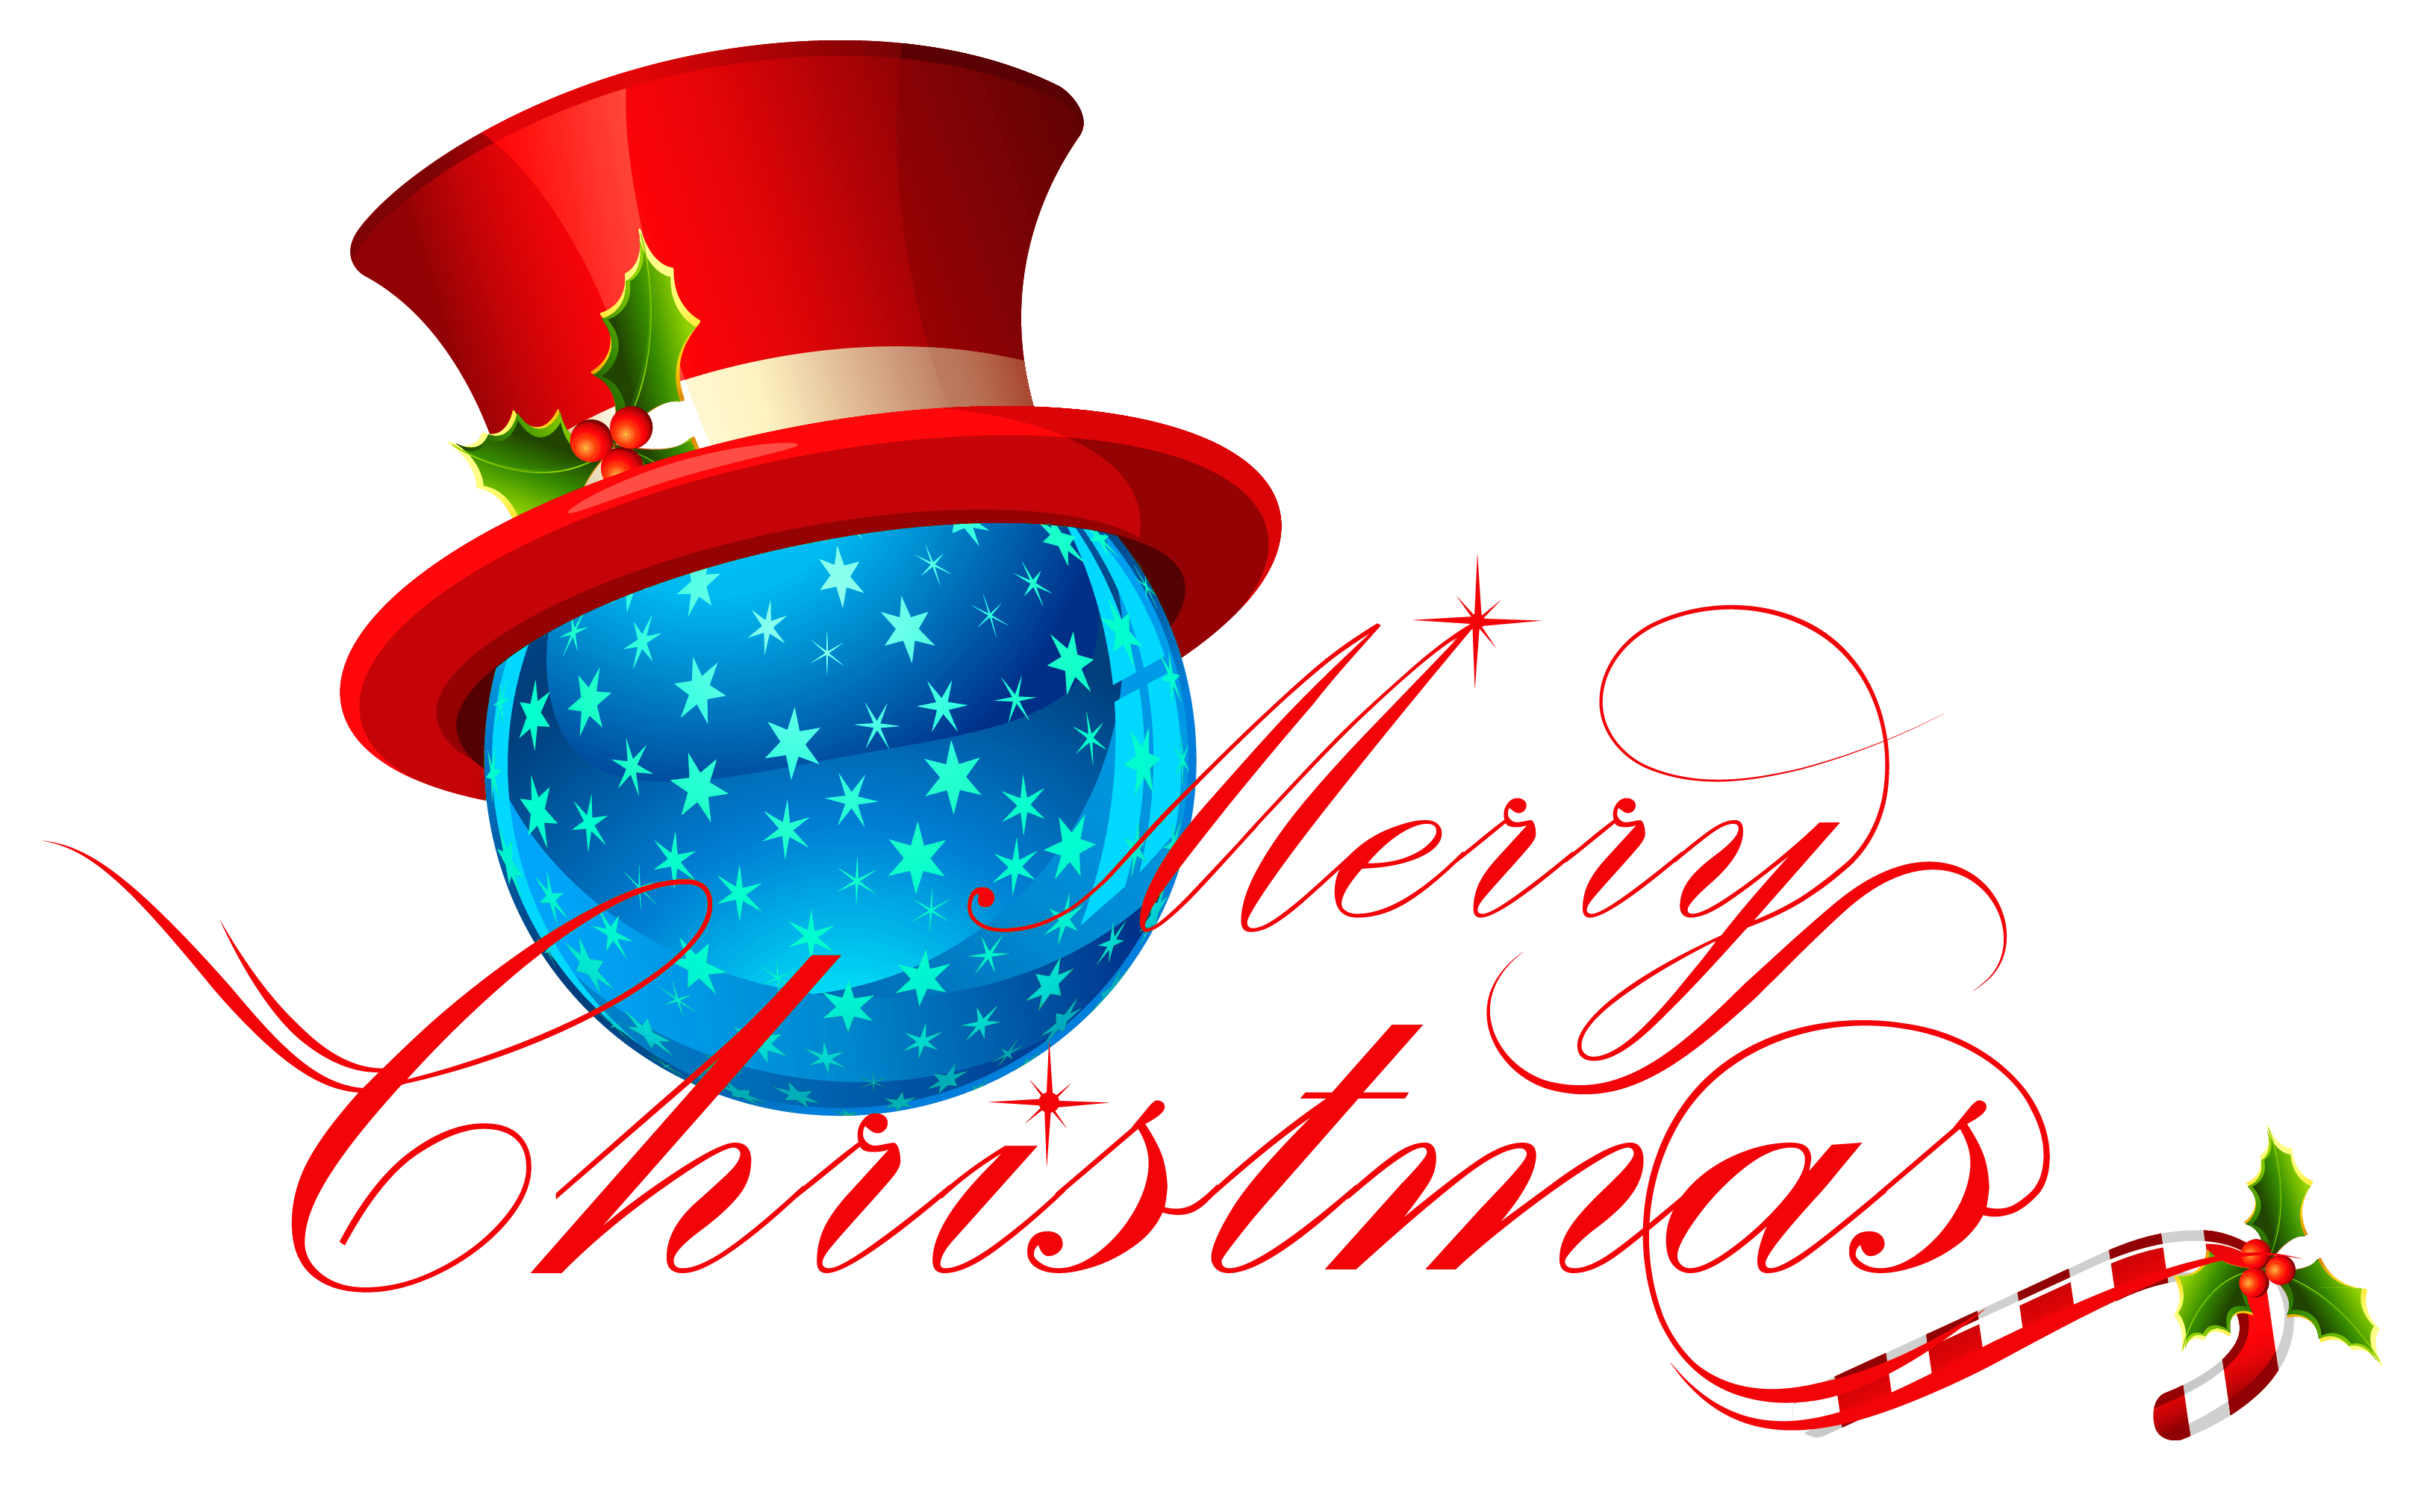 Merry Christmas Party Sign transparent PNG.